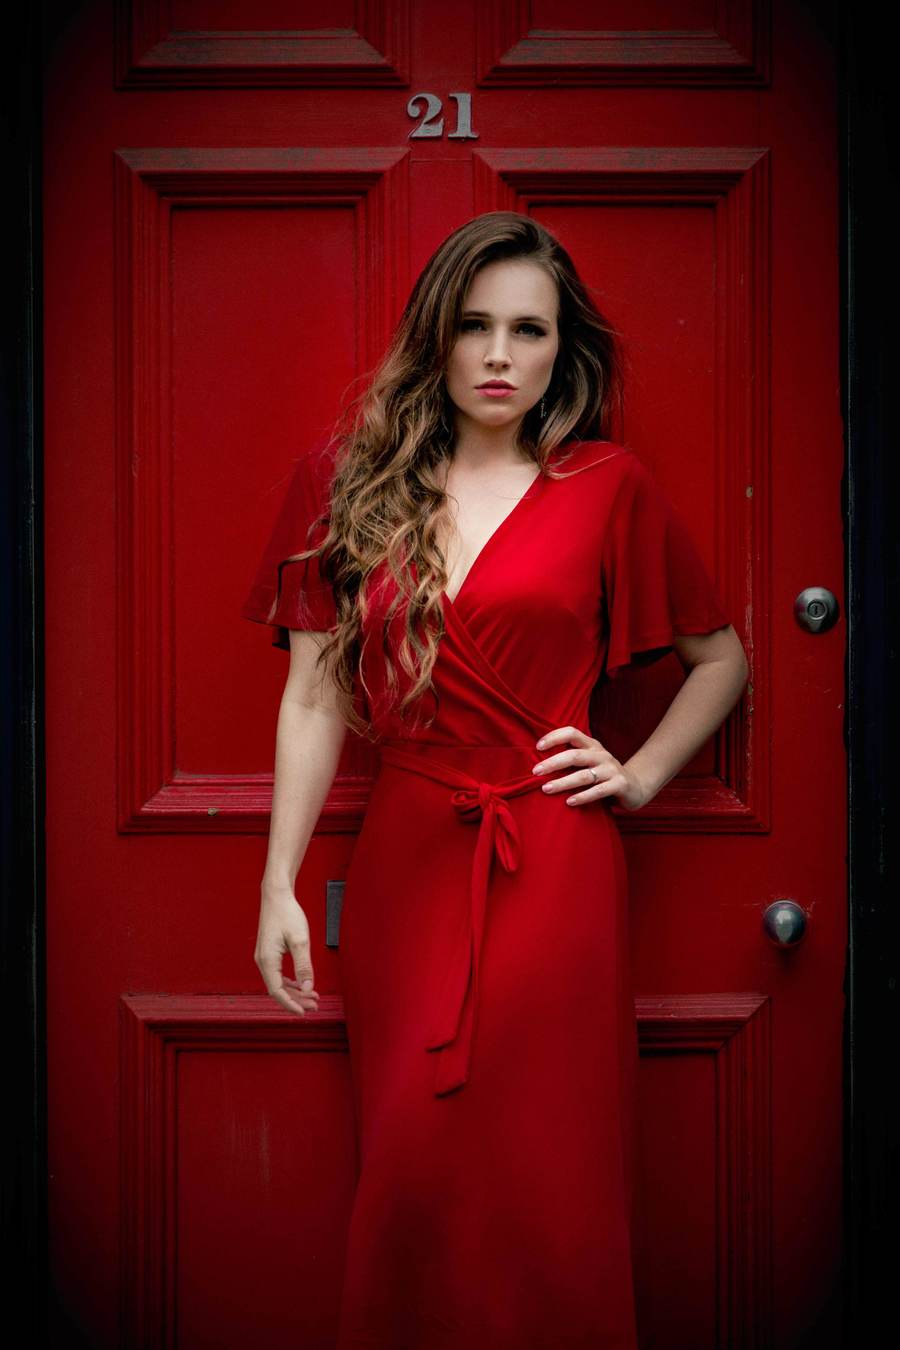 Red door  / Photography by Grewy, Model BeccyWinter, Post processing by Grewy / Uploaded 29th May 2019 @ 10:16 PM